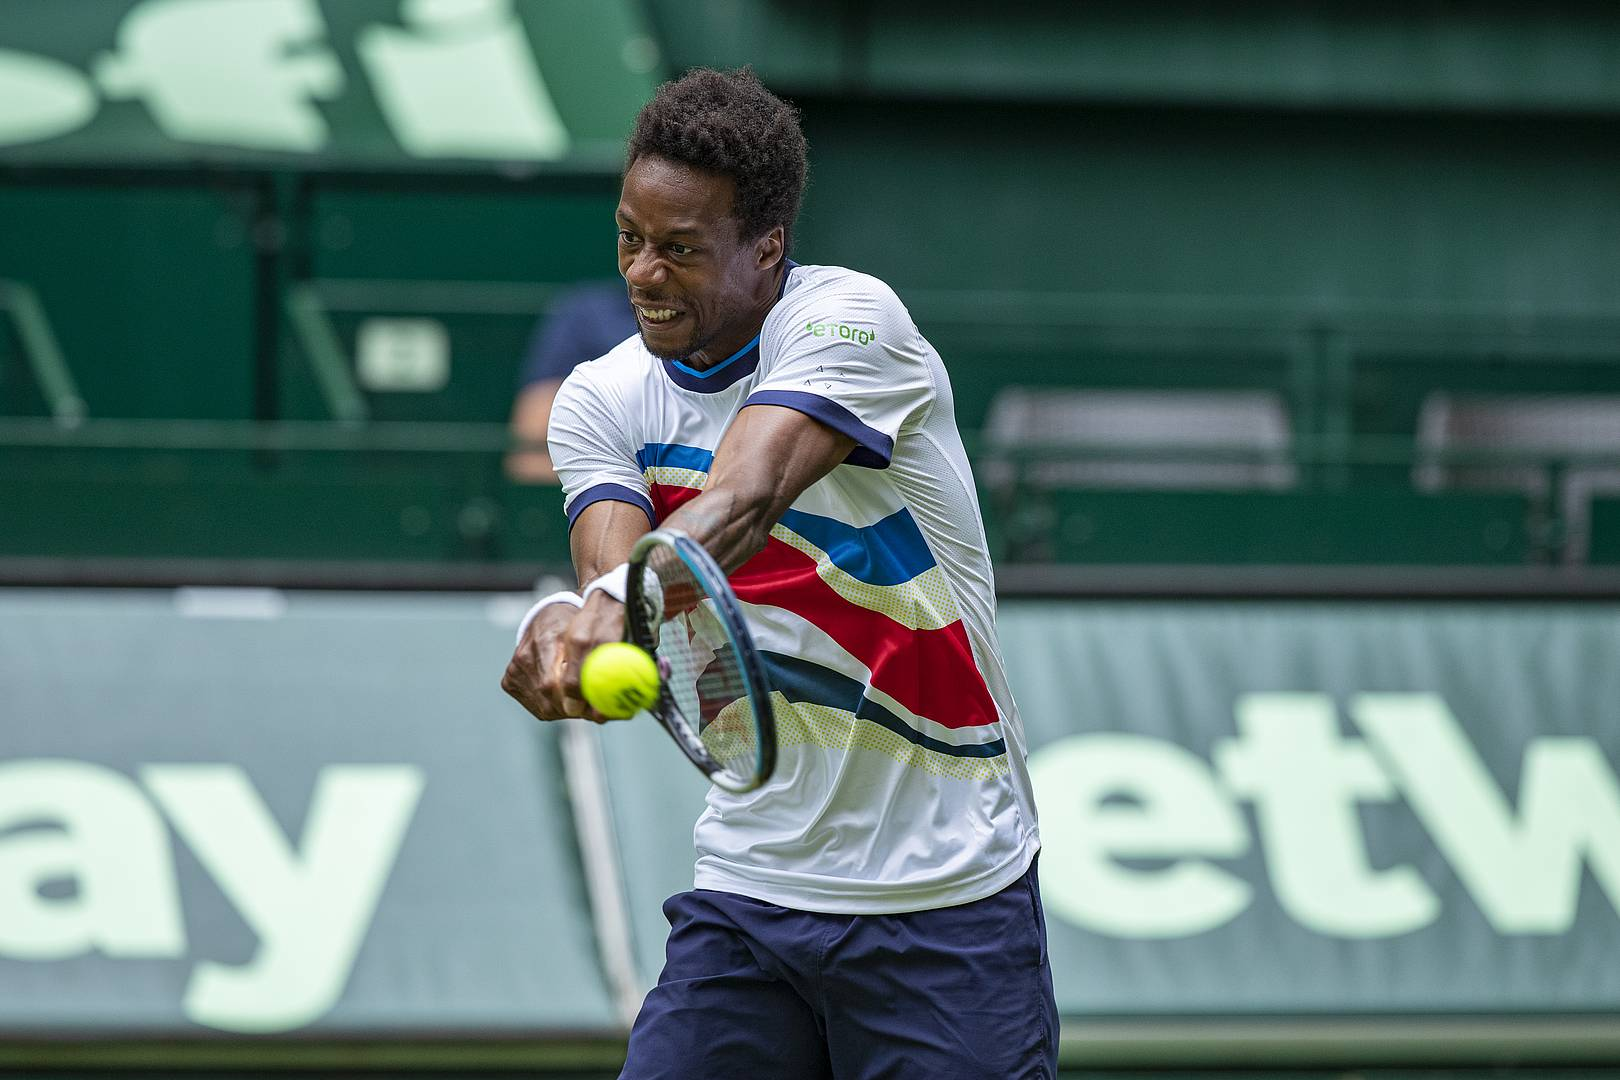 Eastbourne Open 2021: Gael Monfils vs. Max Purcell Tennis Pick and Prediction